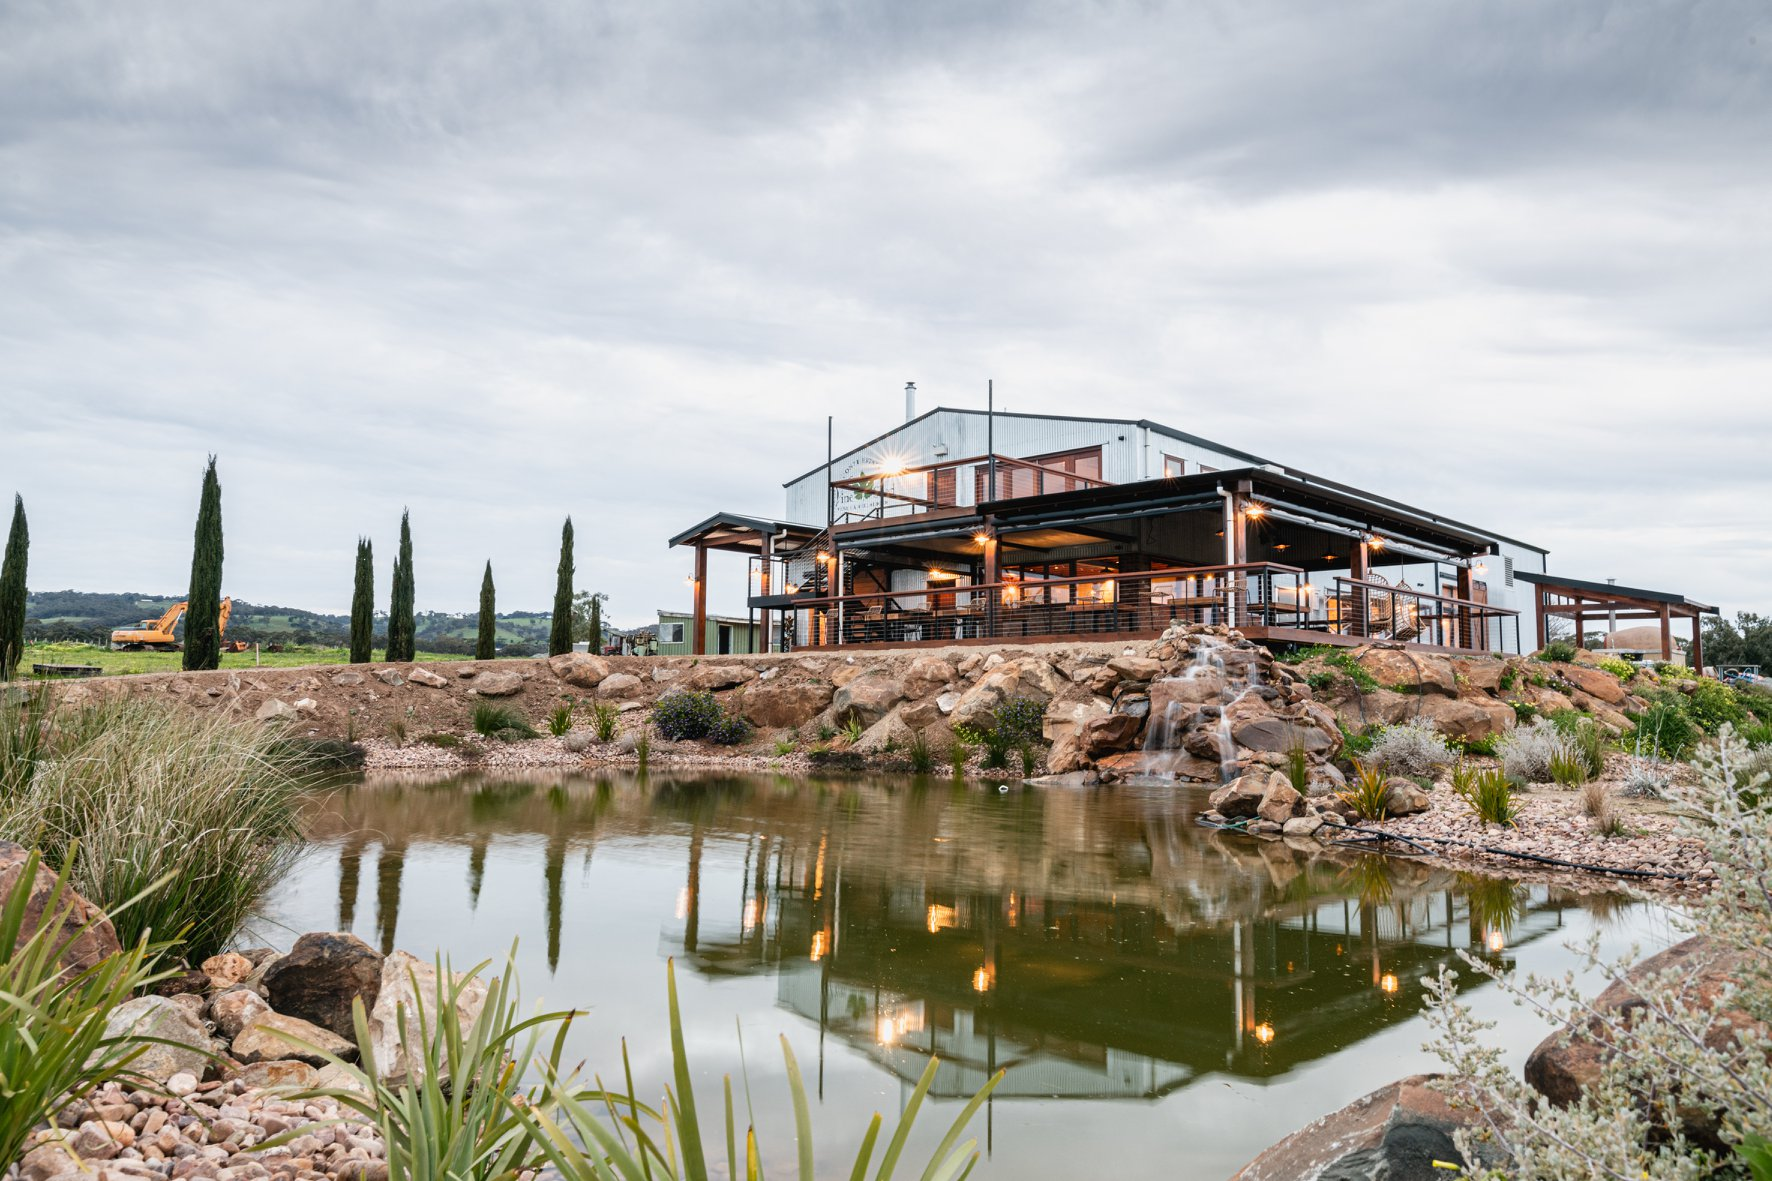 The Vine Shed Venue, McLaren Vale, purpose built wedding and function venue opening in 2020